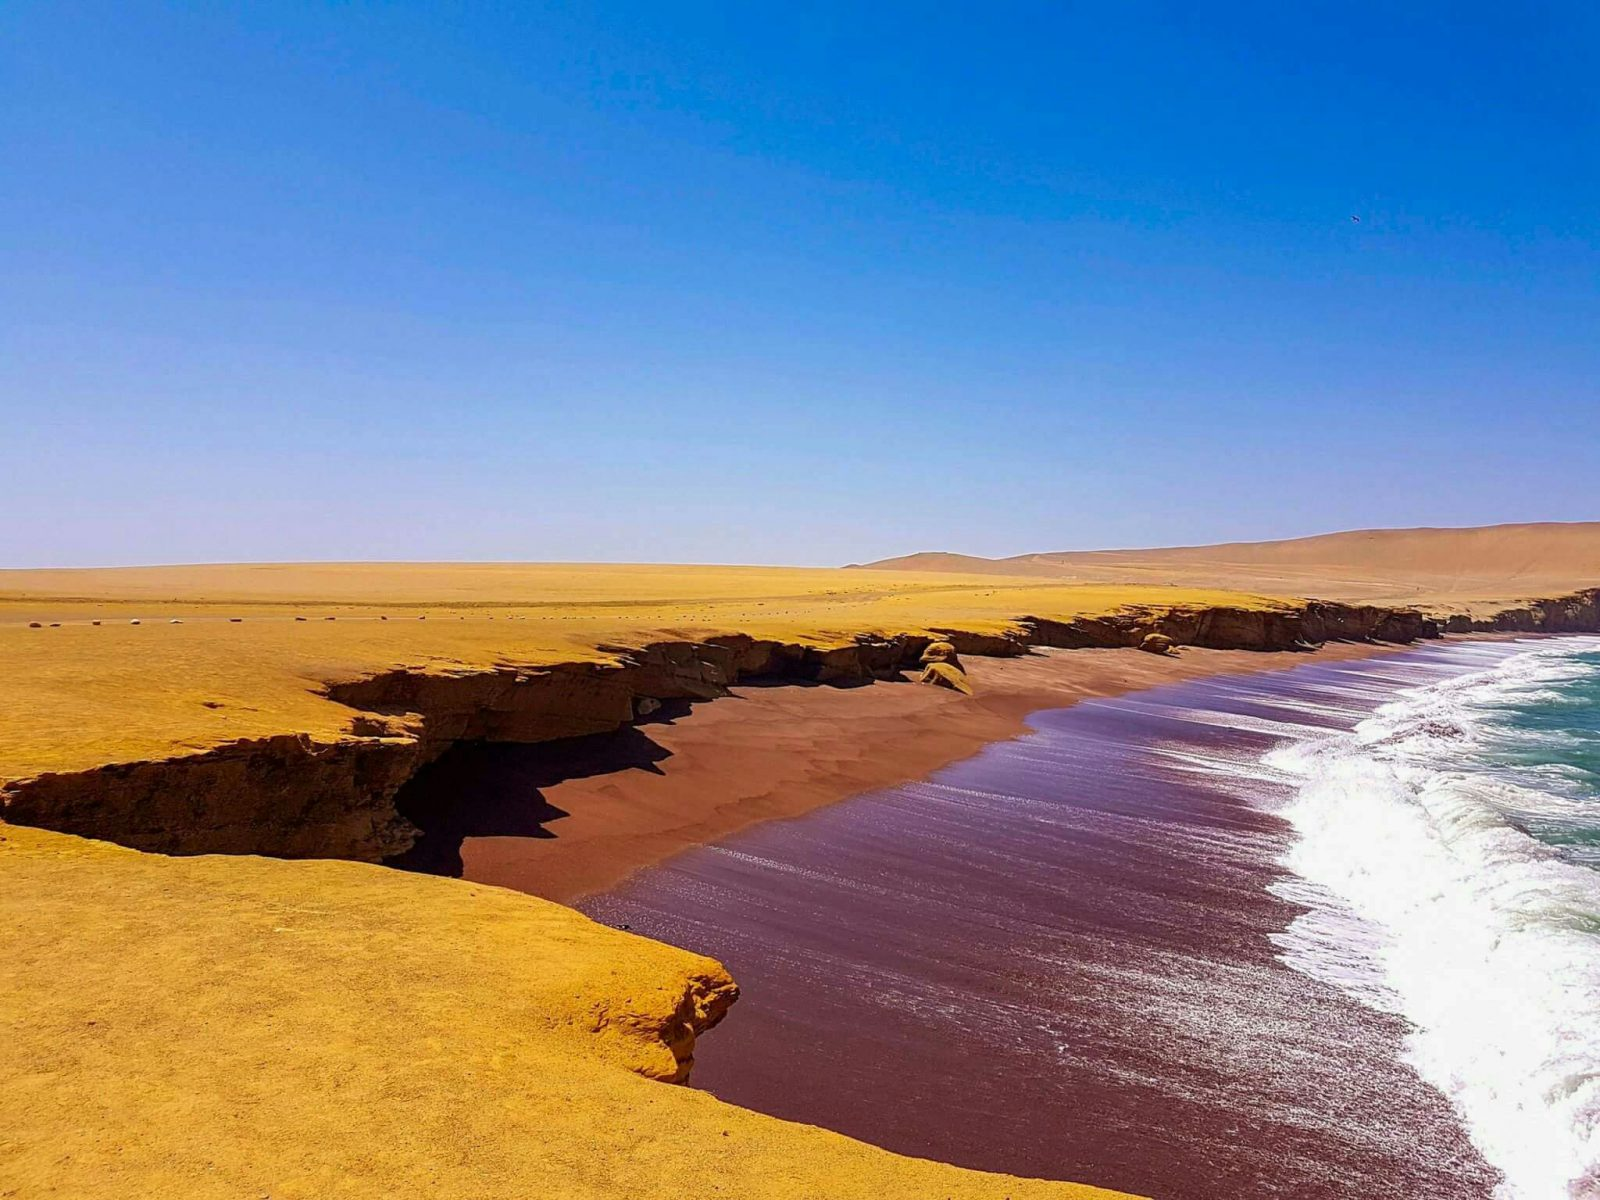 """<img src=""""images/"""" width=""""800"""" height=""""600"""" alt=""""ica - received 101548707330306361968494529 - Peru: Sand and Sails, Ica, Huacachina and Paracas"""">"""